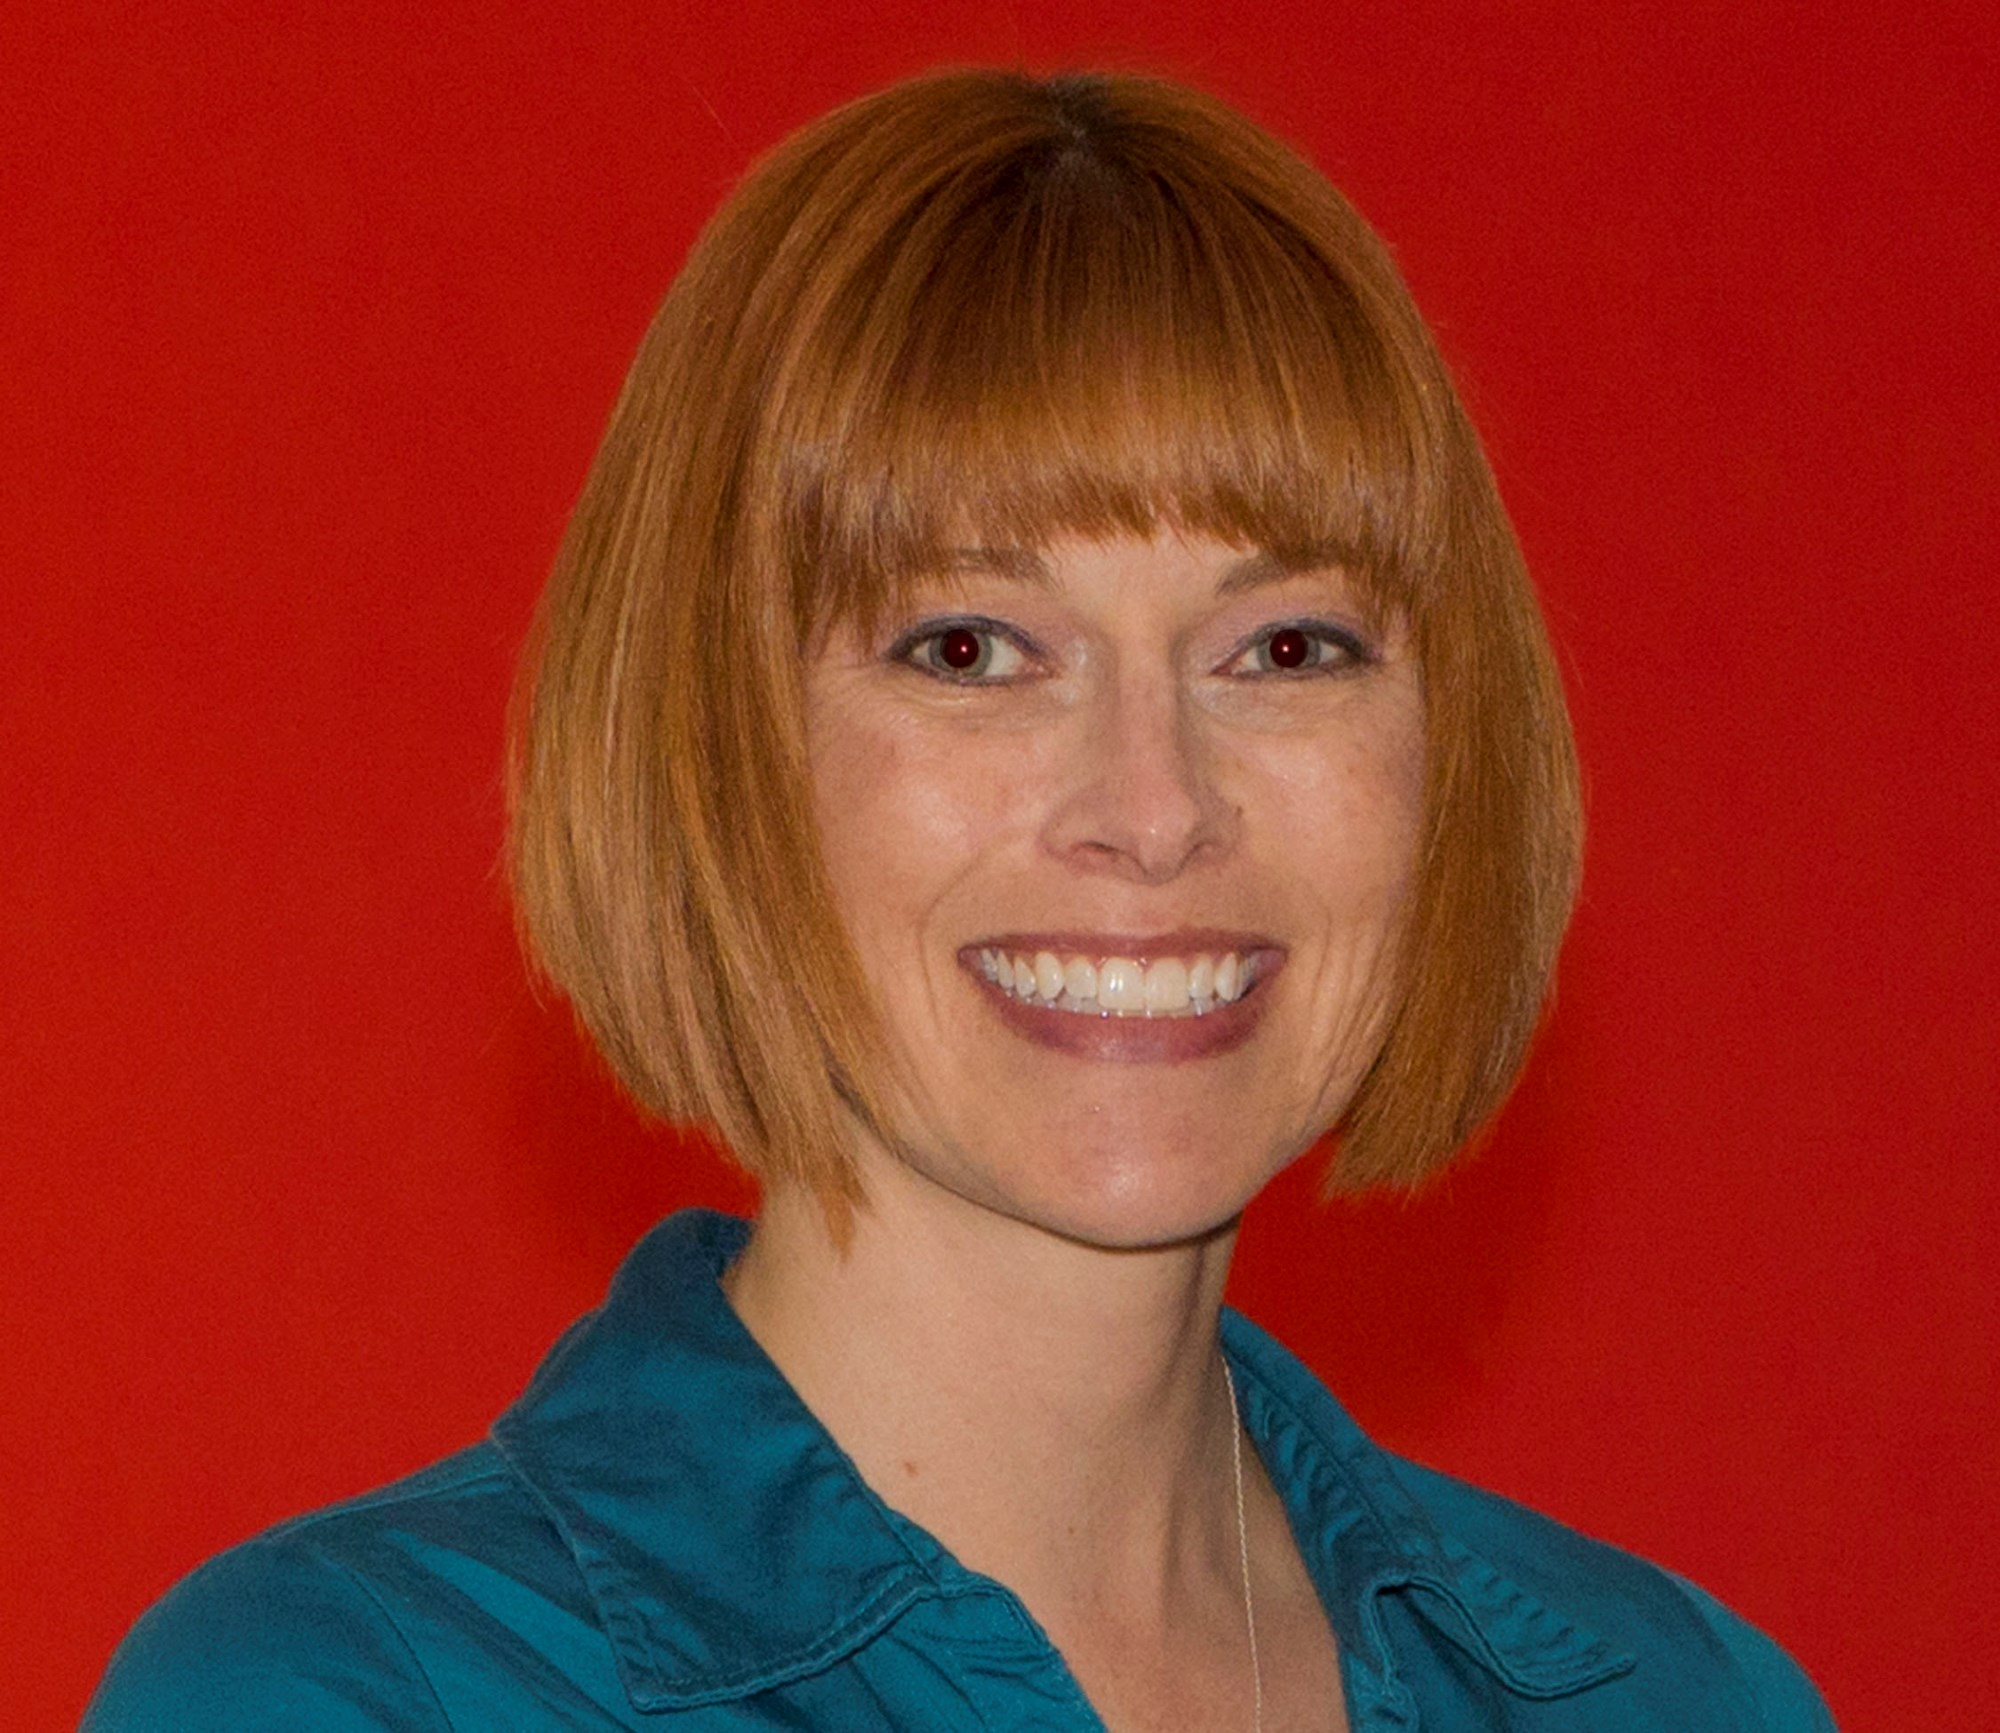 Martha Walz is a content strategist at Ogilvy CommonHealth